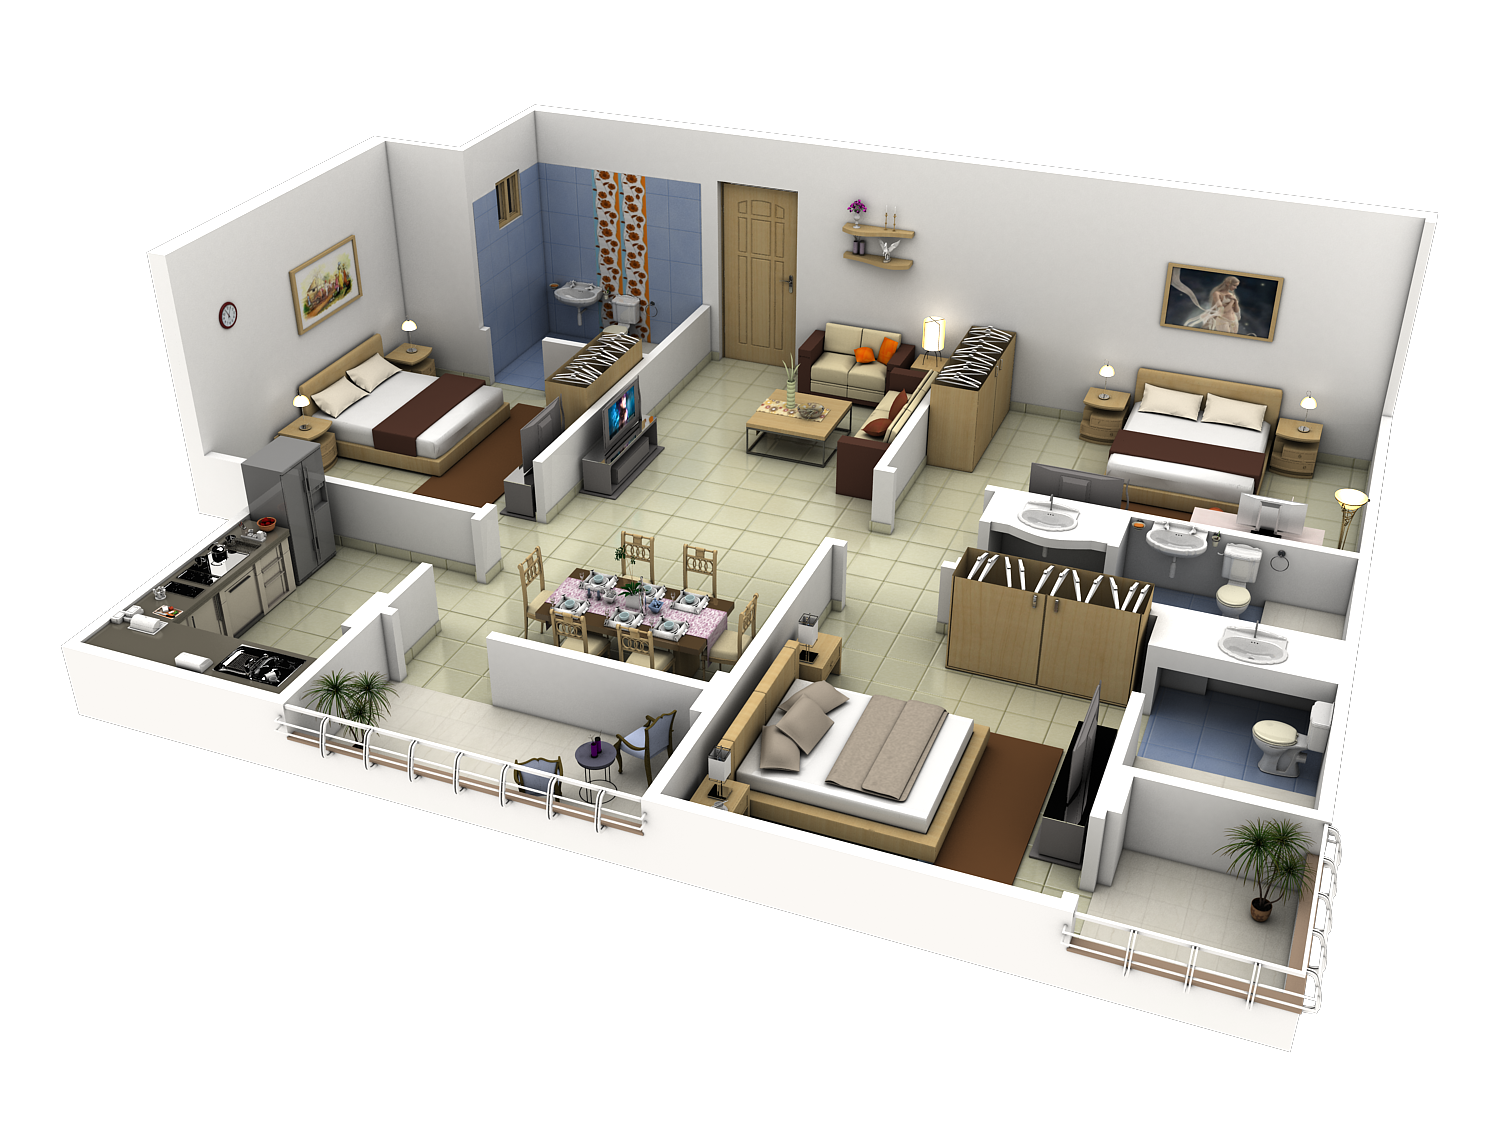 Tech n gen july 2011 renders pinterest tech house for 3d apartment floor plans